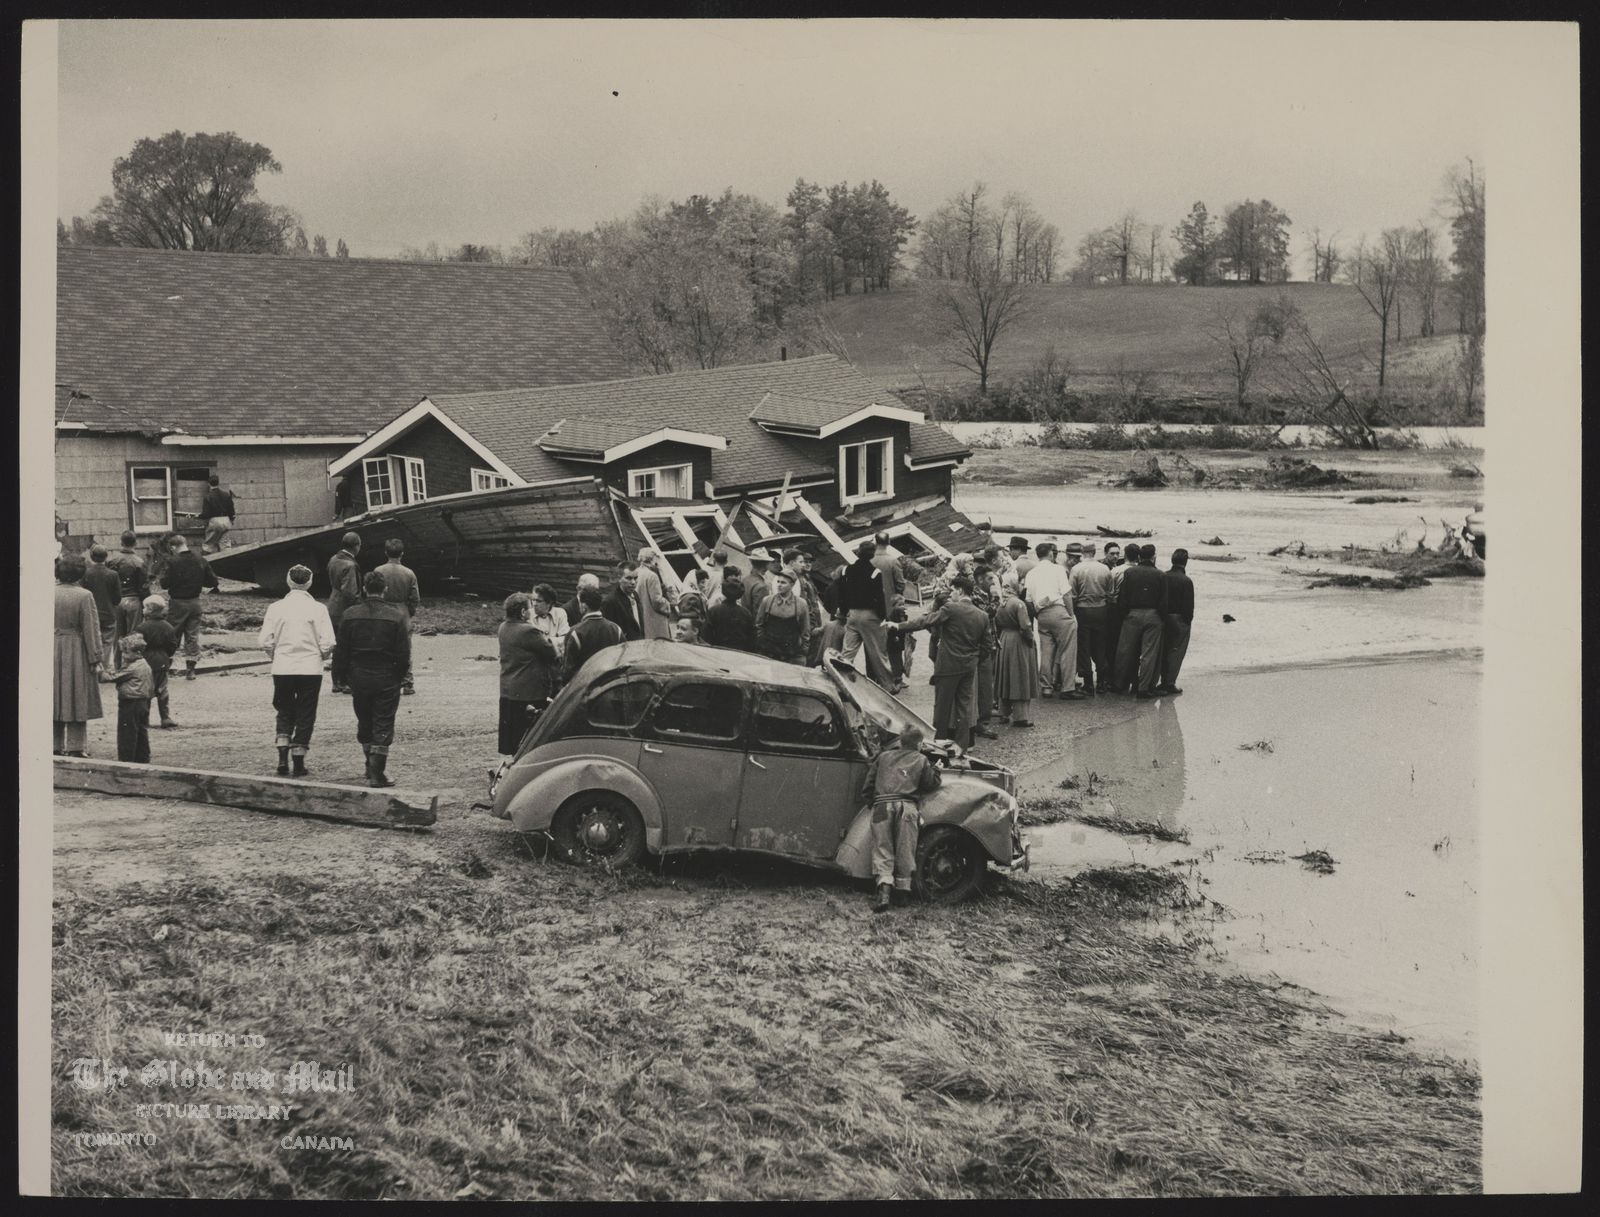 HURRICANE HAZEL Weston. Fairglen Rd. homes jammed together by flood. [Hurricane Hazel hits Weston, Ontario on October 16, 1954. Death and destruction rode the crest of Ontario flood waters in the nightmare hours of Saturday morning, leaving 54 known dead, 69 missing and presumed drowned, and a chaotic condition never before experienced in Southern Ontario.]